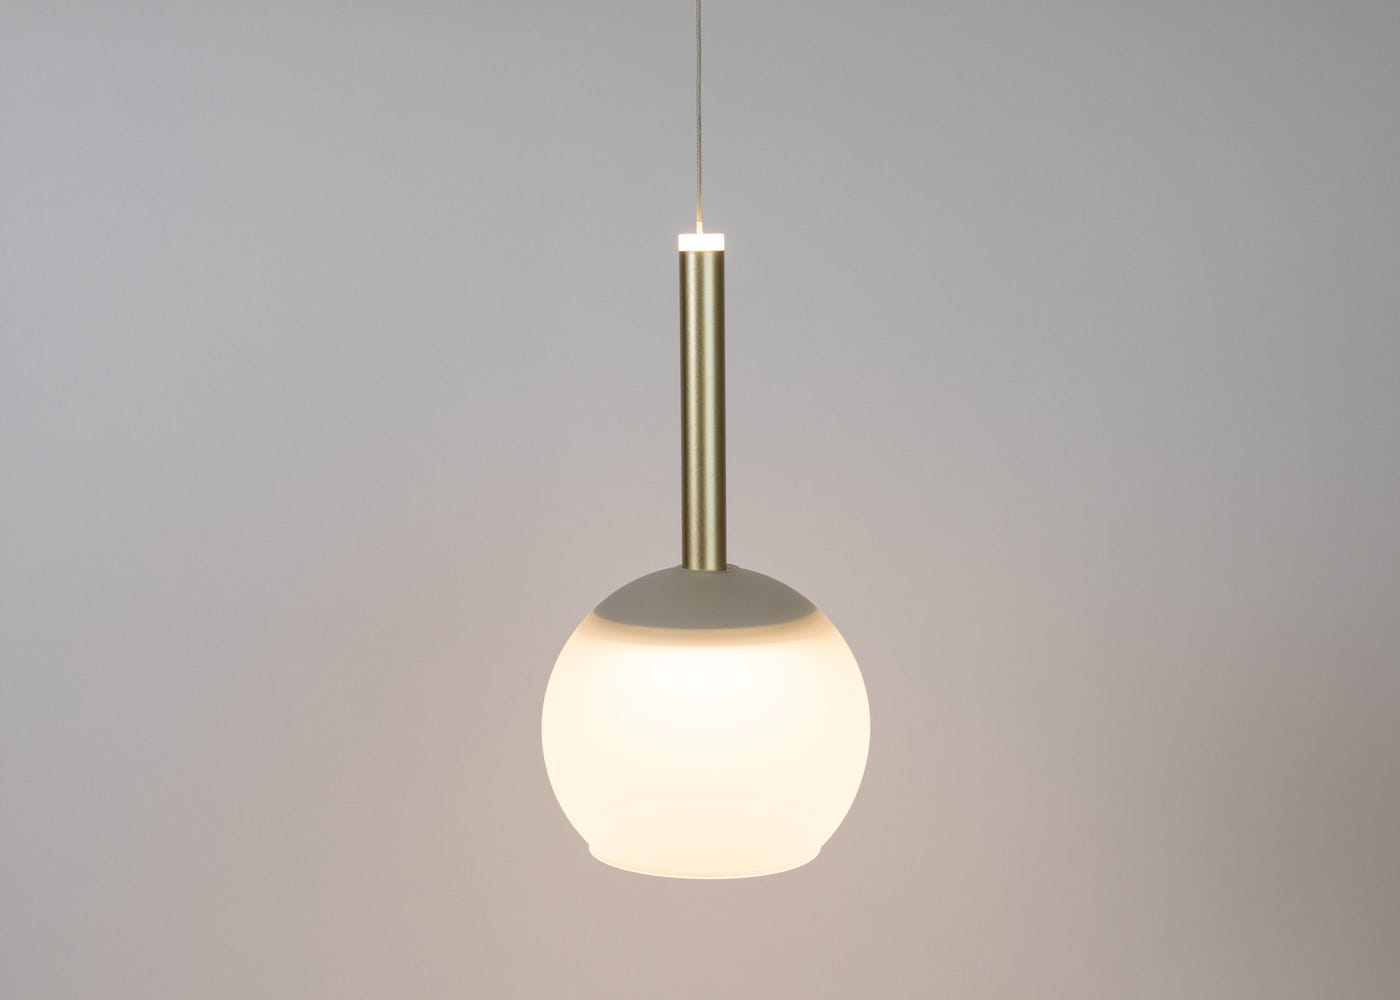 Frosted glass shade with disc long LED pendant in gold on (please note the pendant is sold separately).